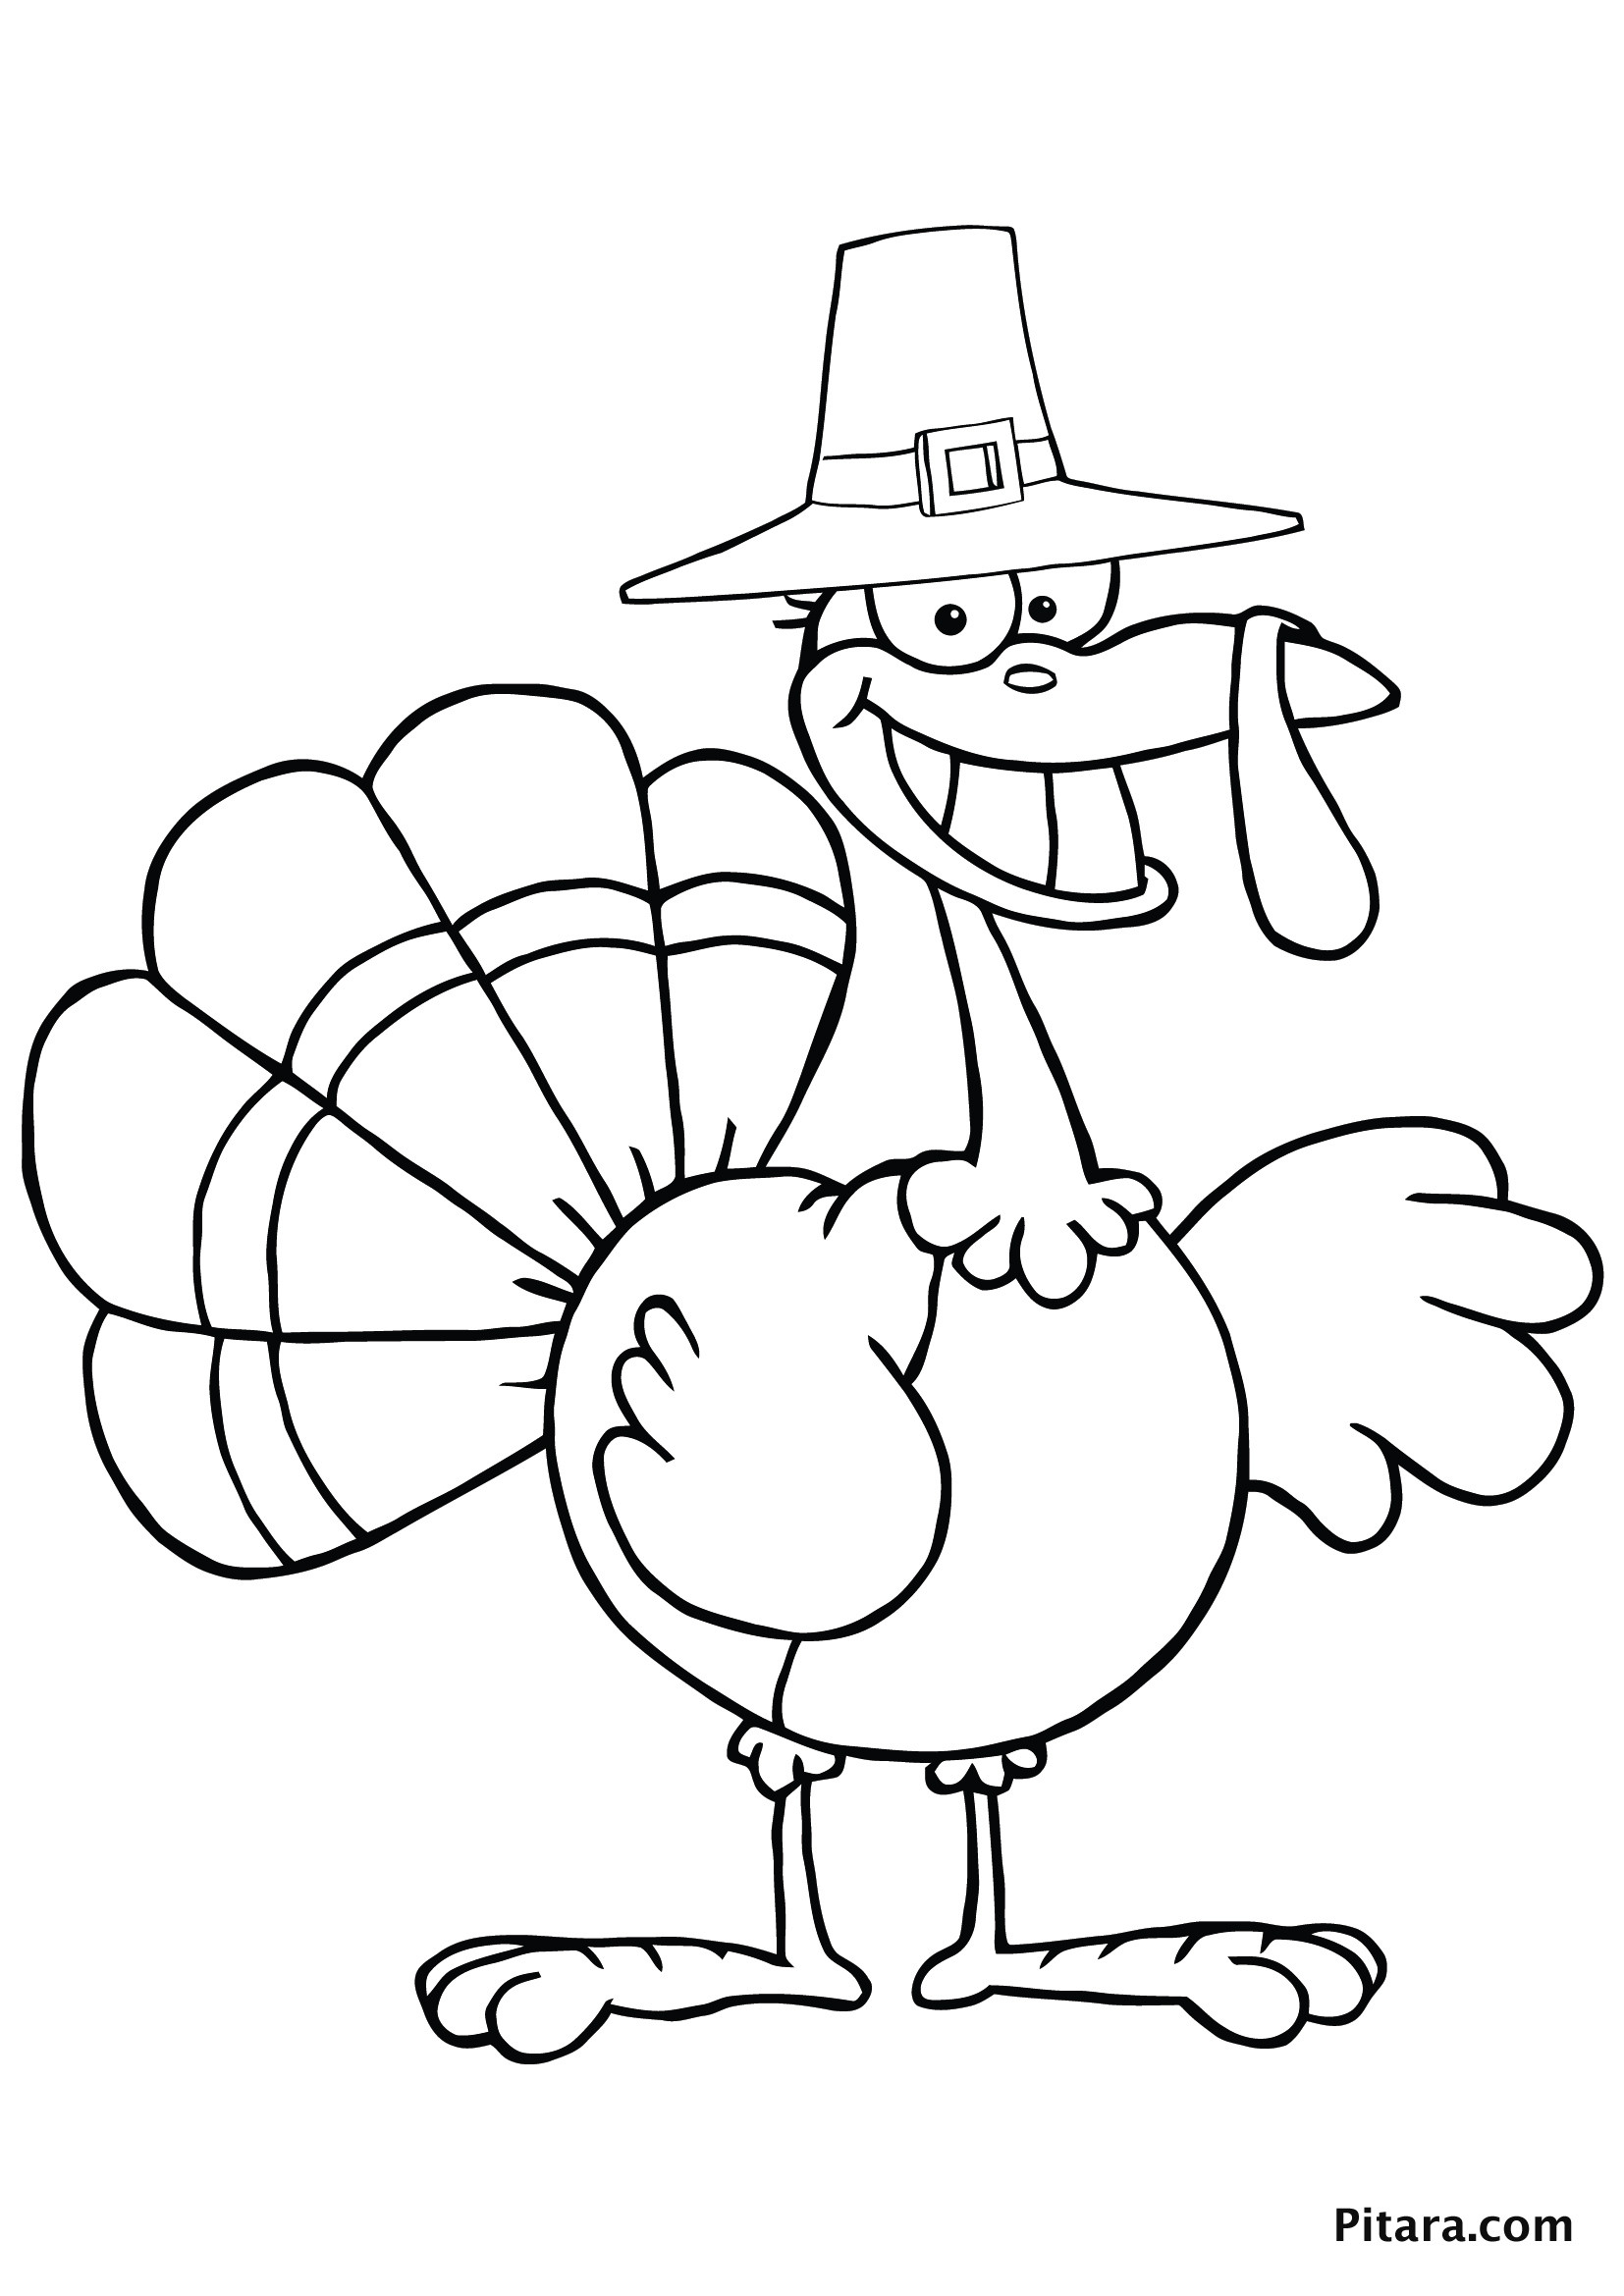 Thanksgiving Coloring Pages For Children  Turkey Coloring Pages for Kids